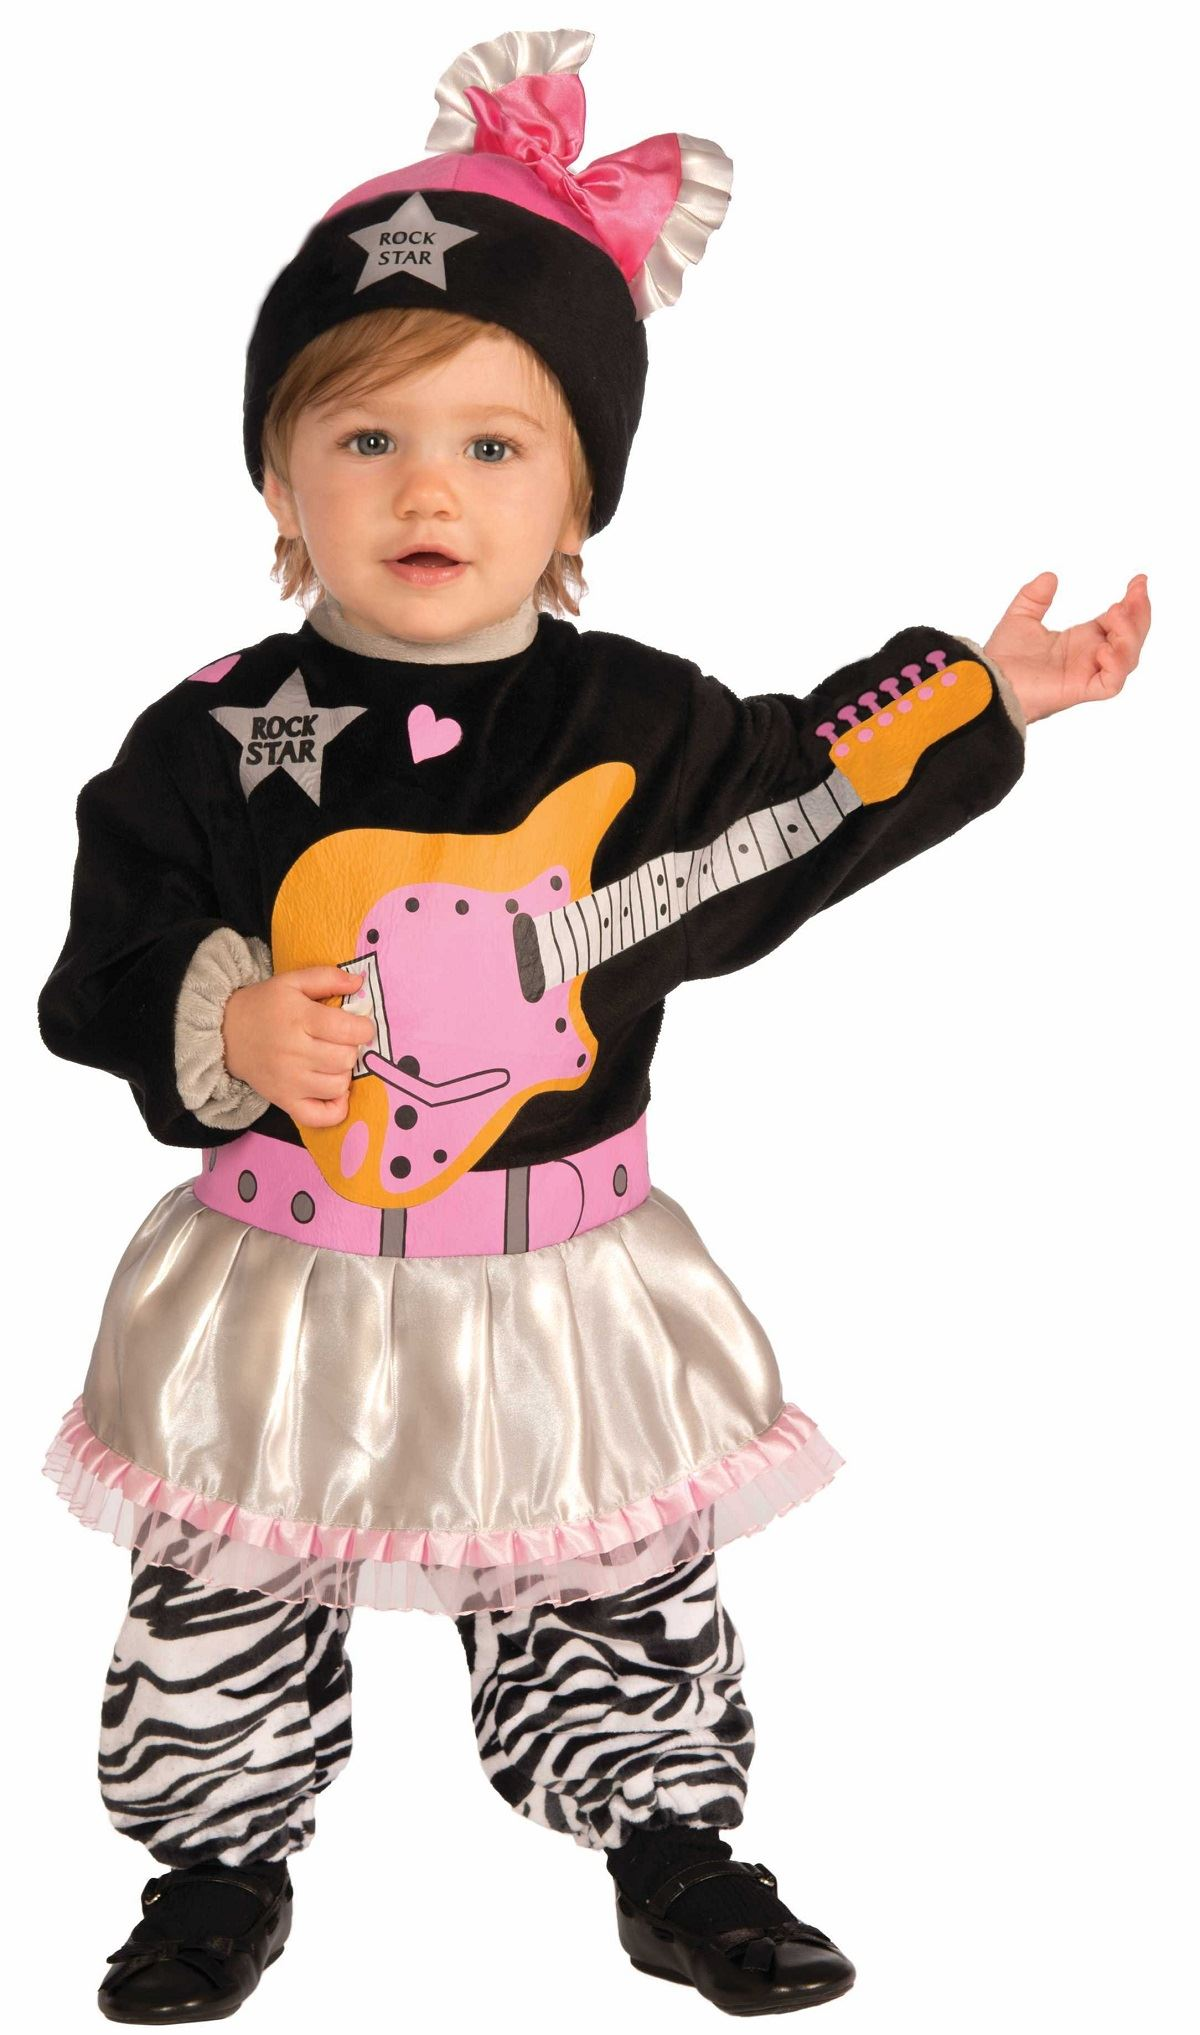 Wondrous Kids 80S Baby Girl Punk Style Toddler Costume 21 99 The Hairstyles For Men Maxibearus